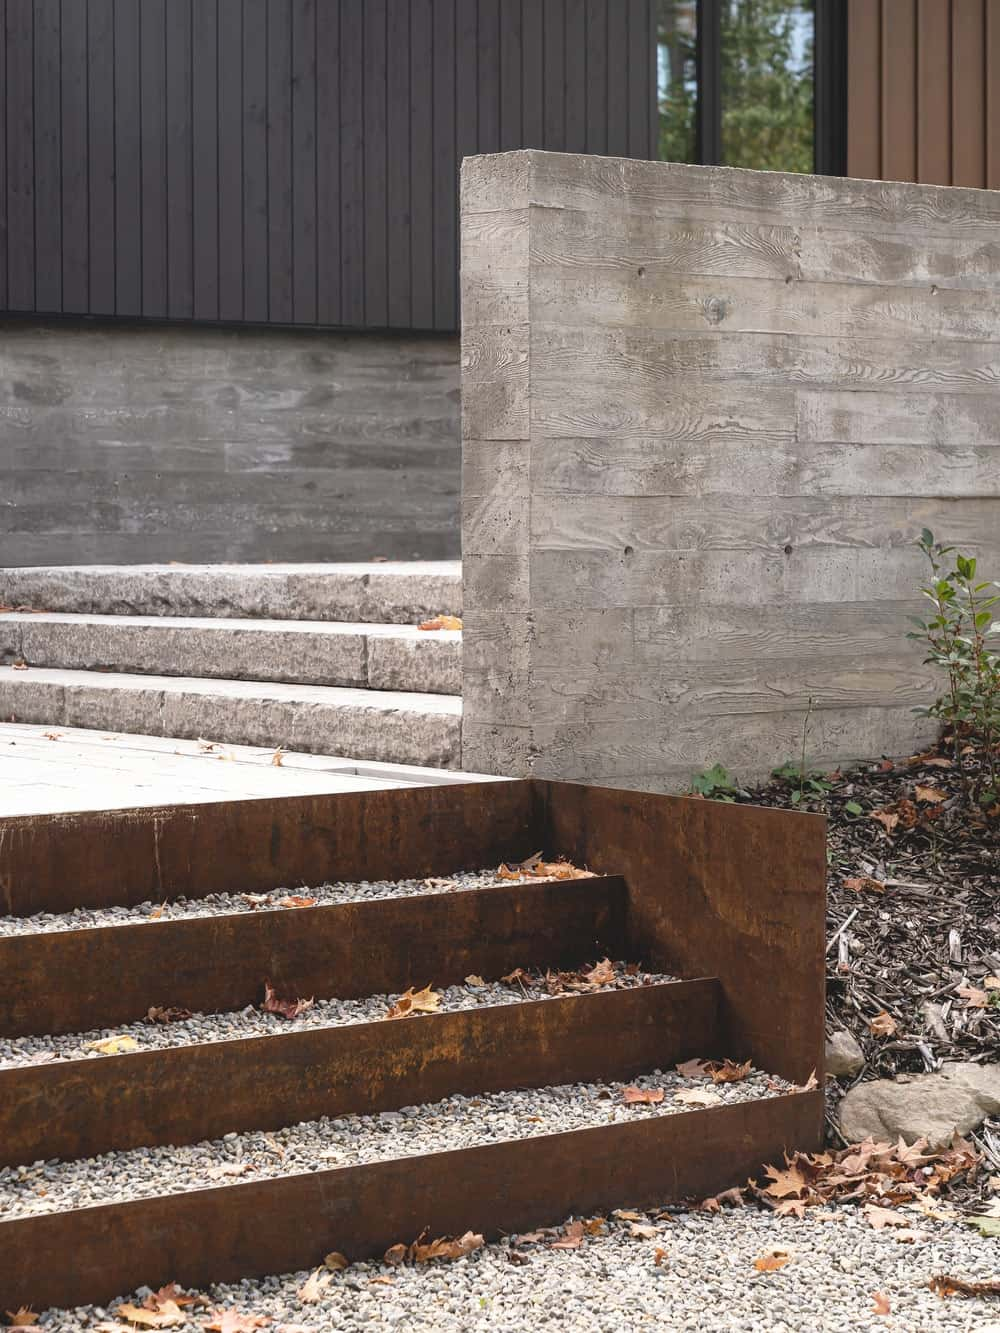 This is a close look at the concrete steps leading from the courtyard to the main entrance of the house.